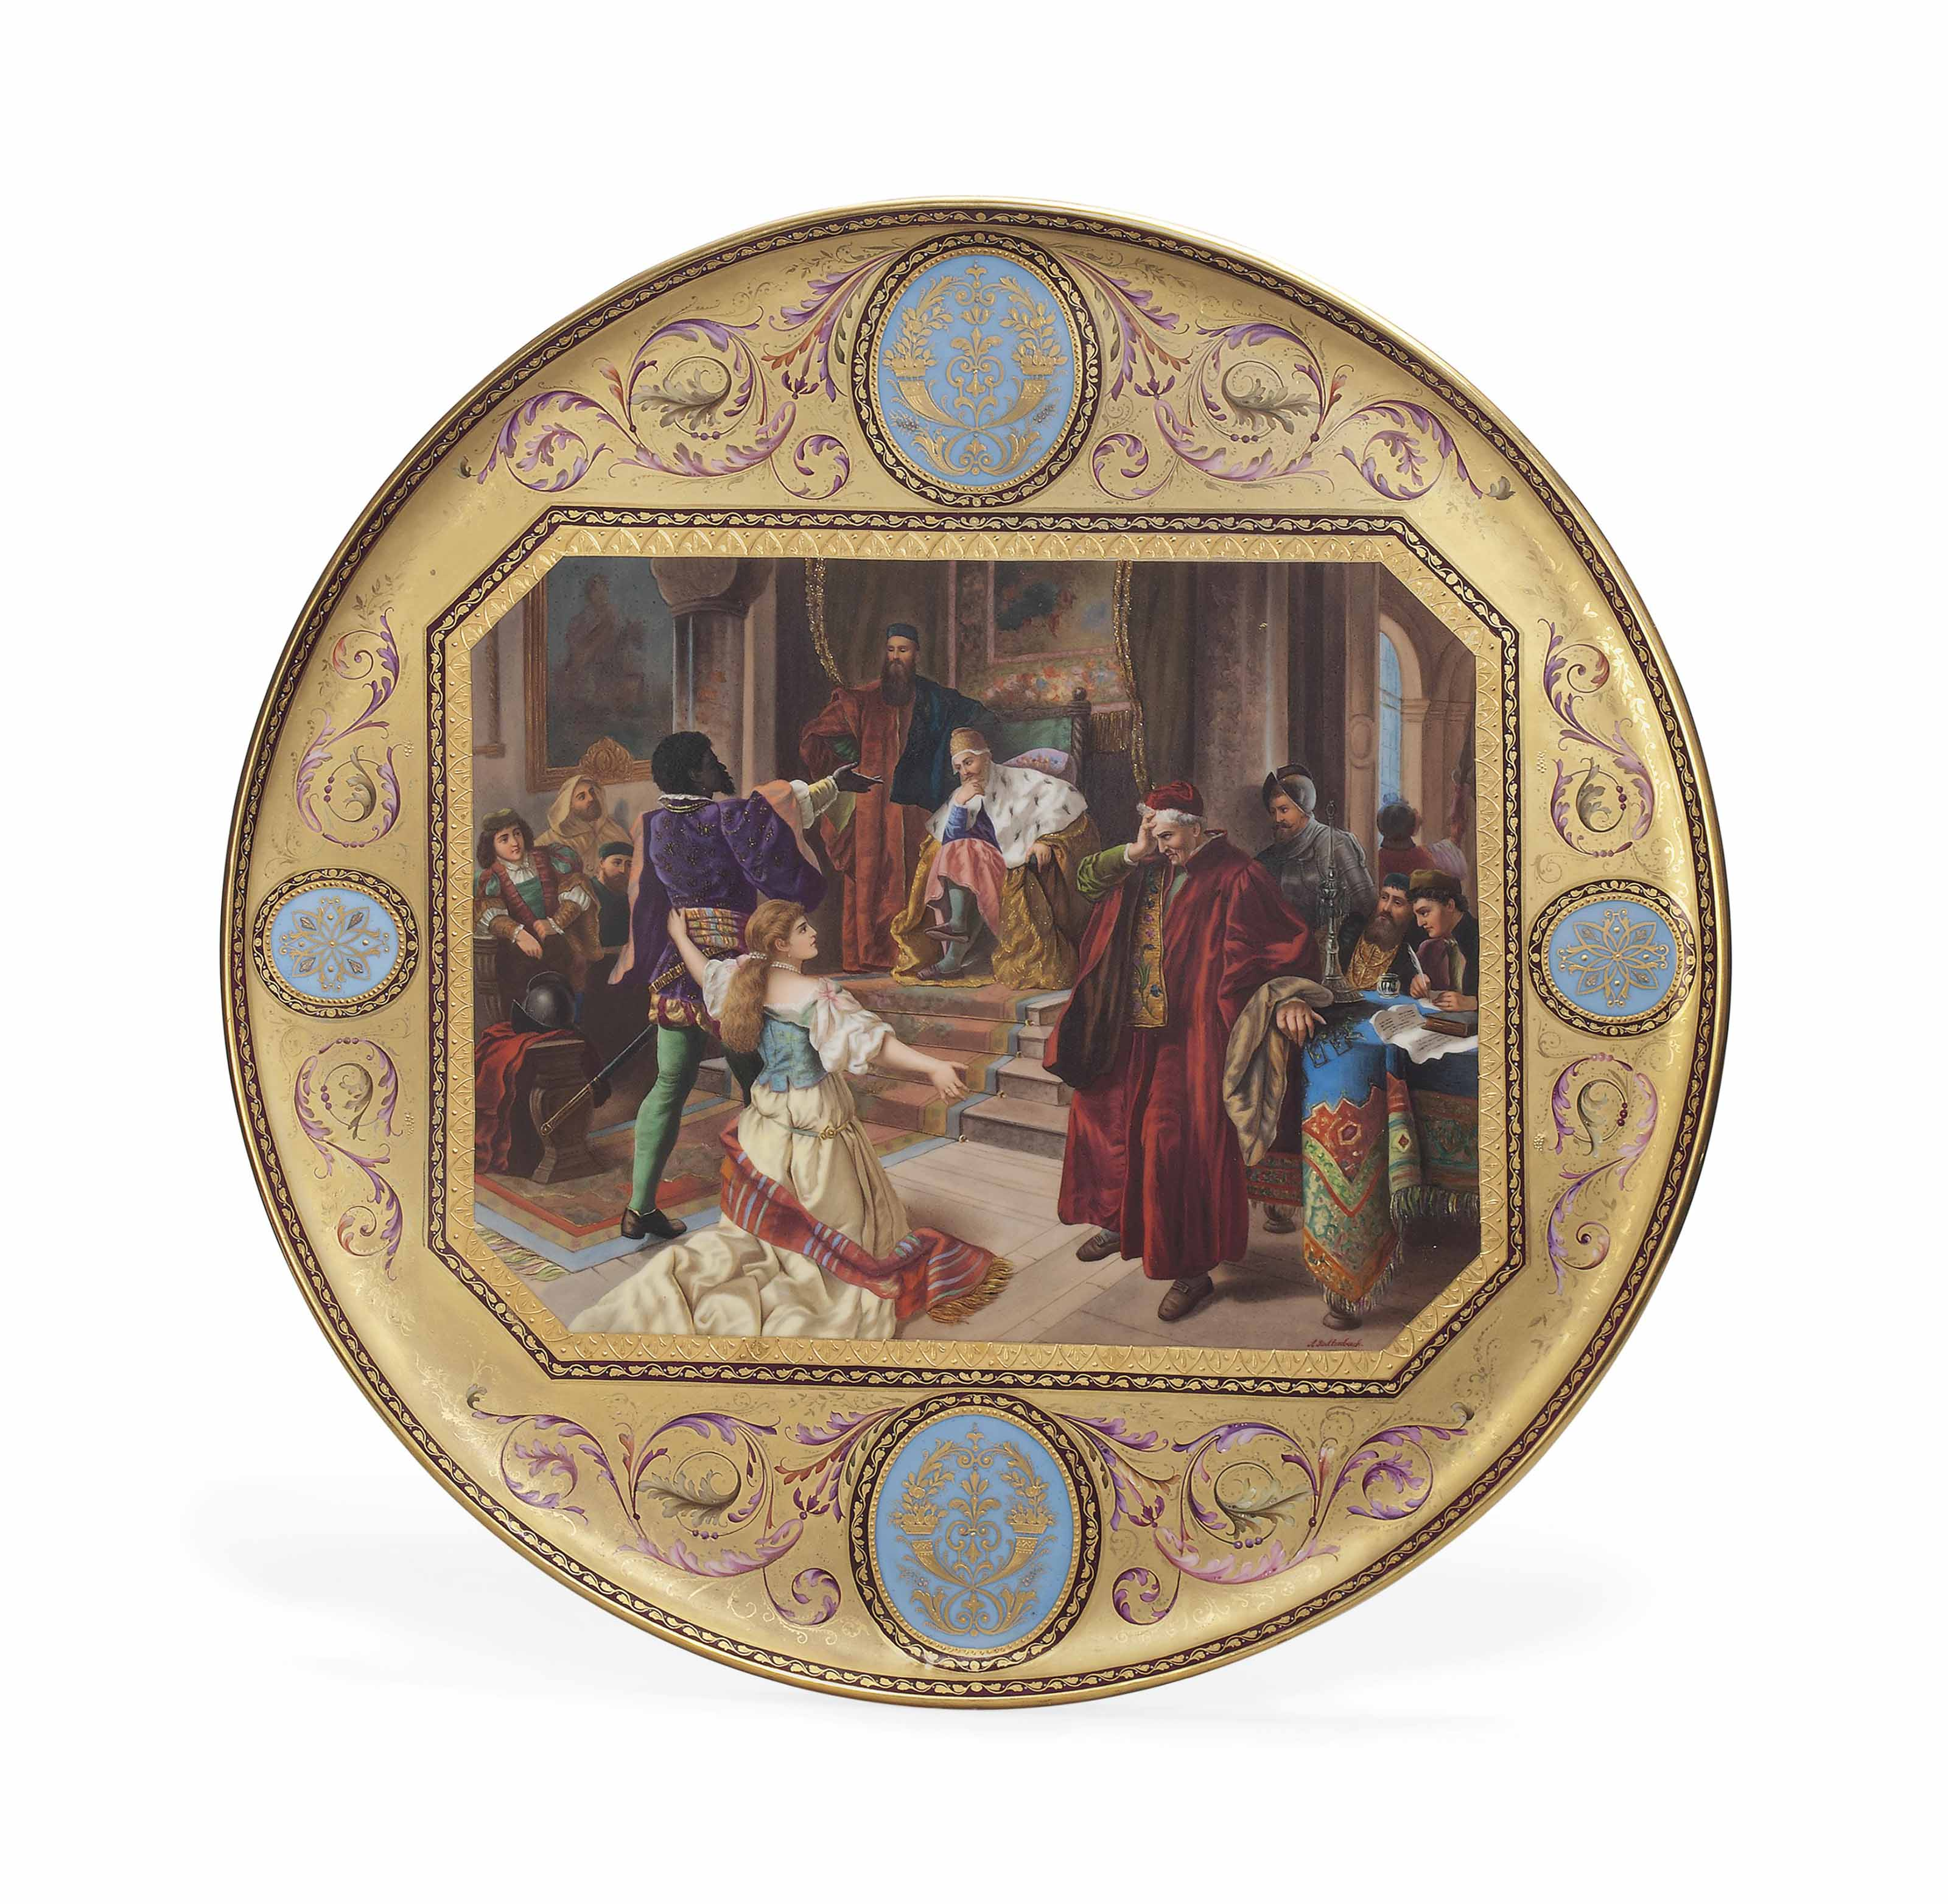 A VIENNA-STYLE PORCELAIN GOLD-